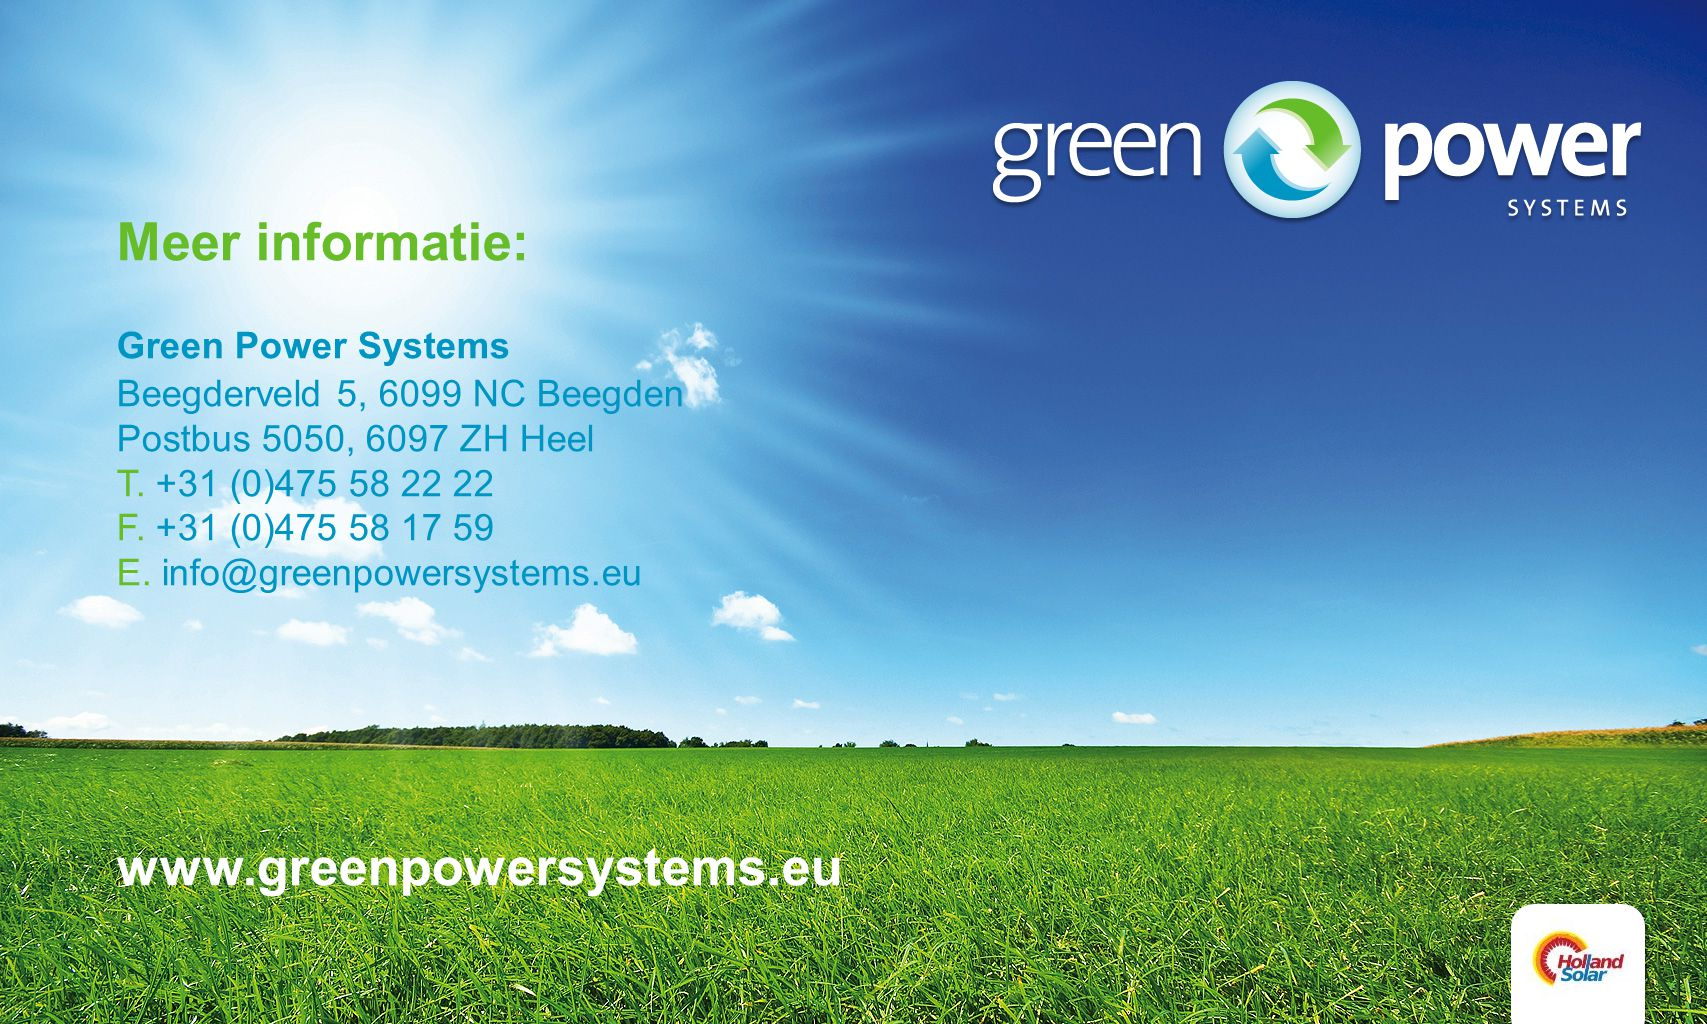 Meer informatie: www.greenpowersystems.eu Green Power Systems